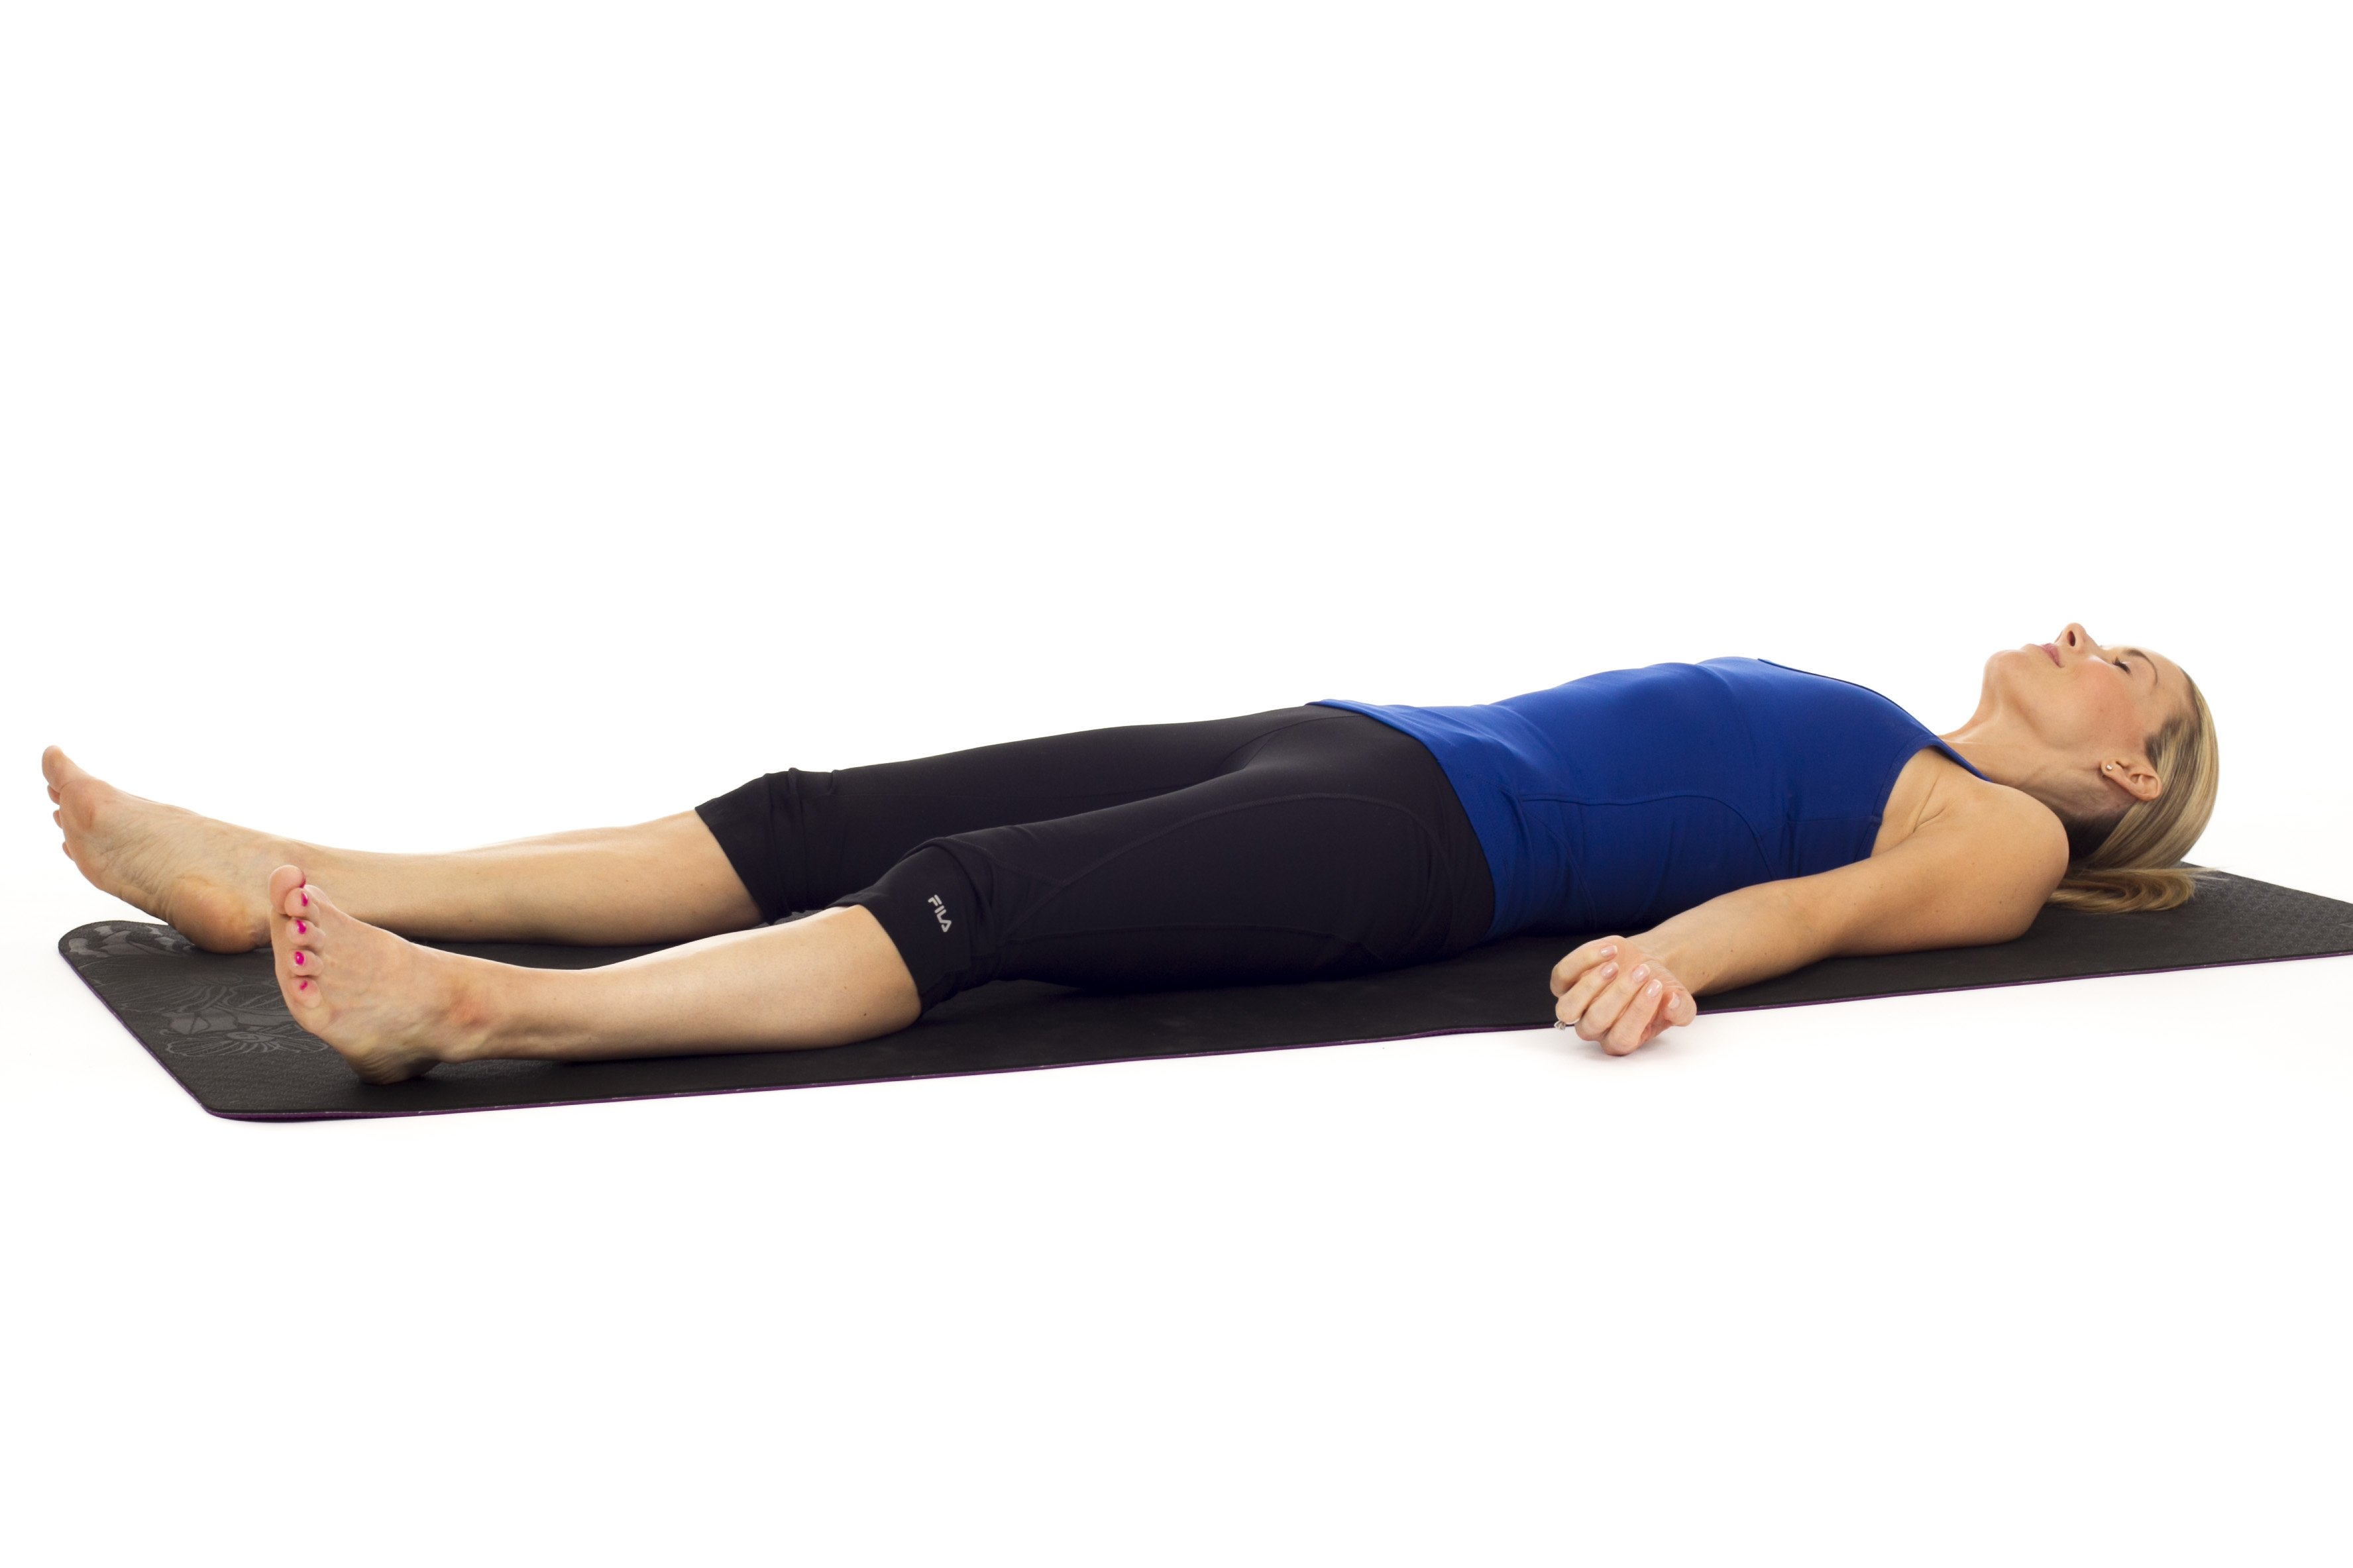 Yoga Poses For A Healthy Glow